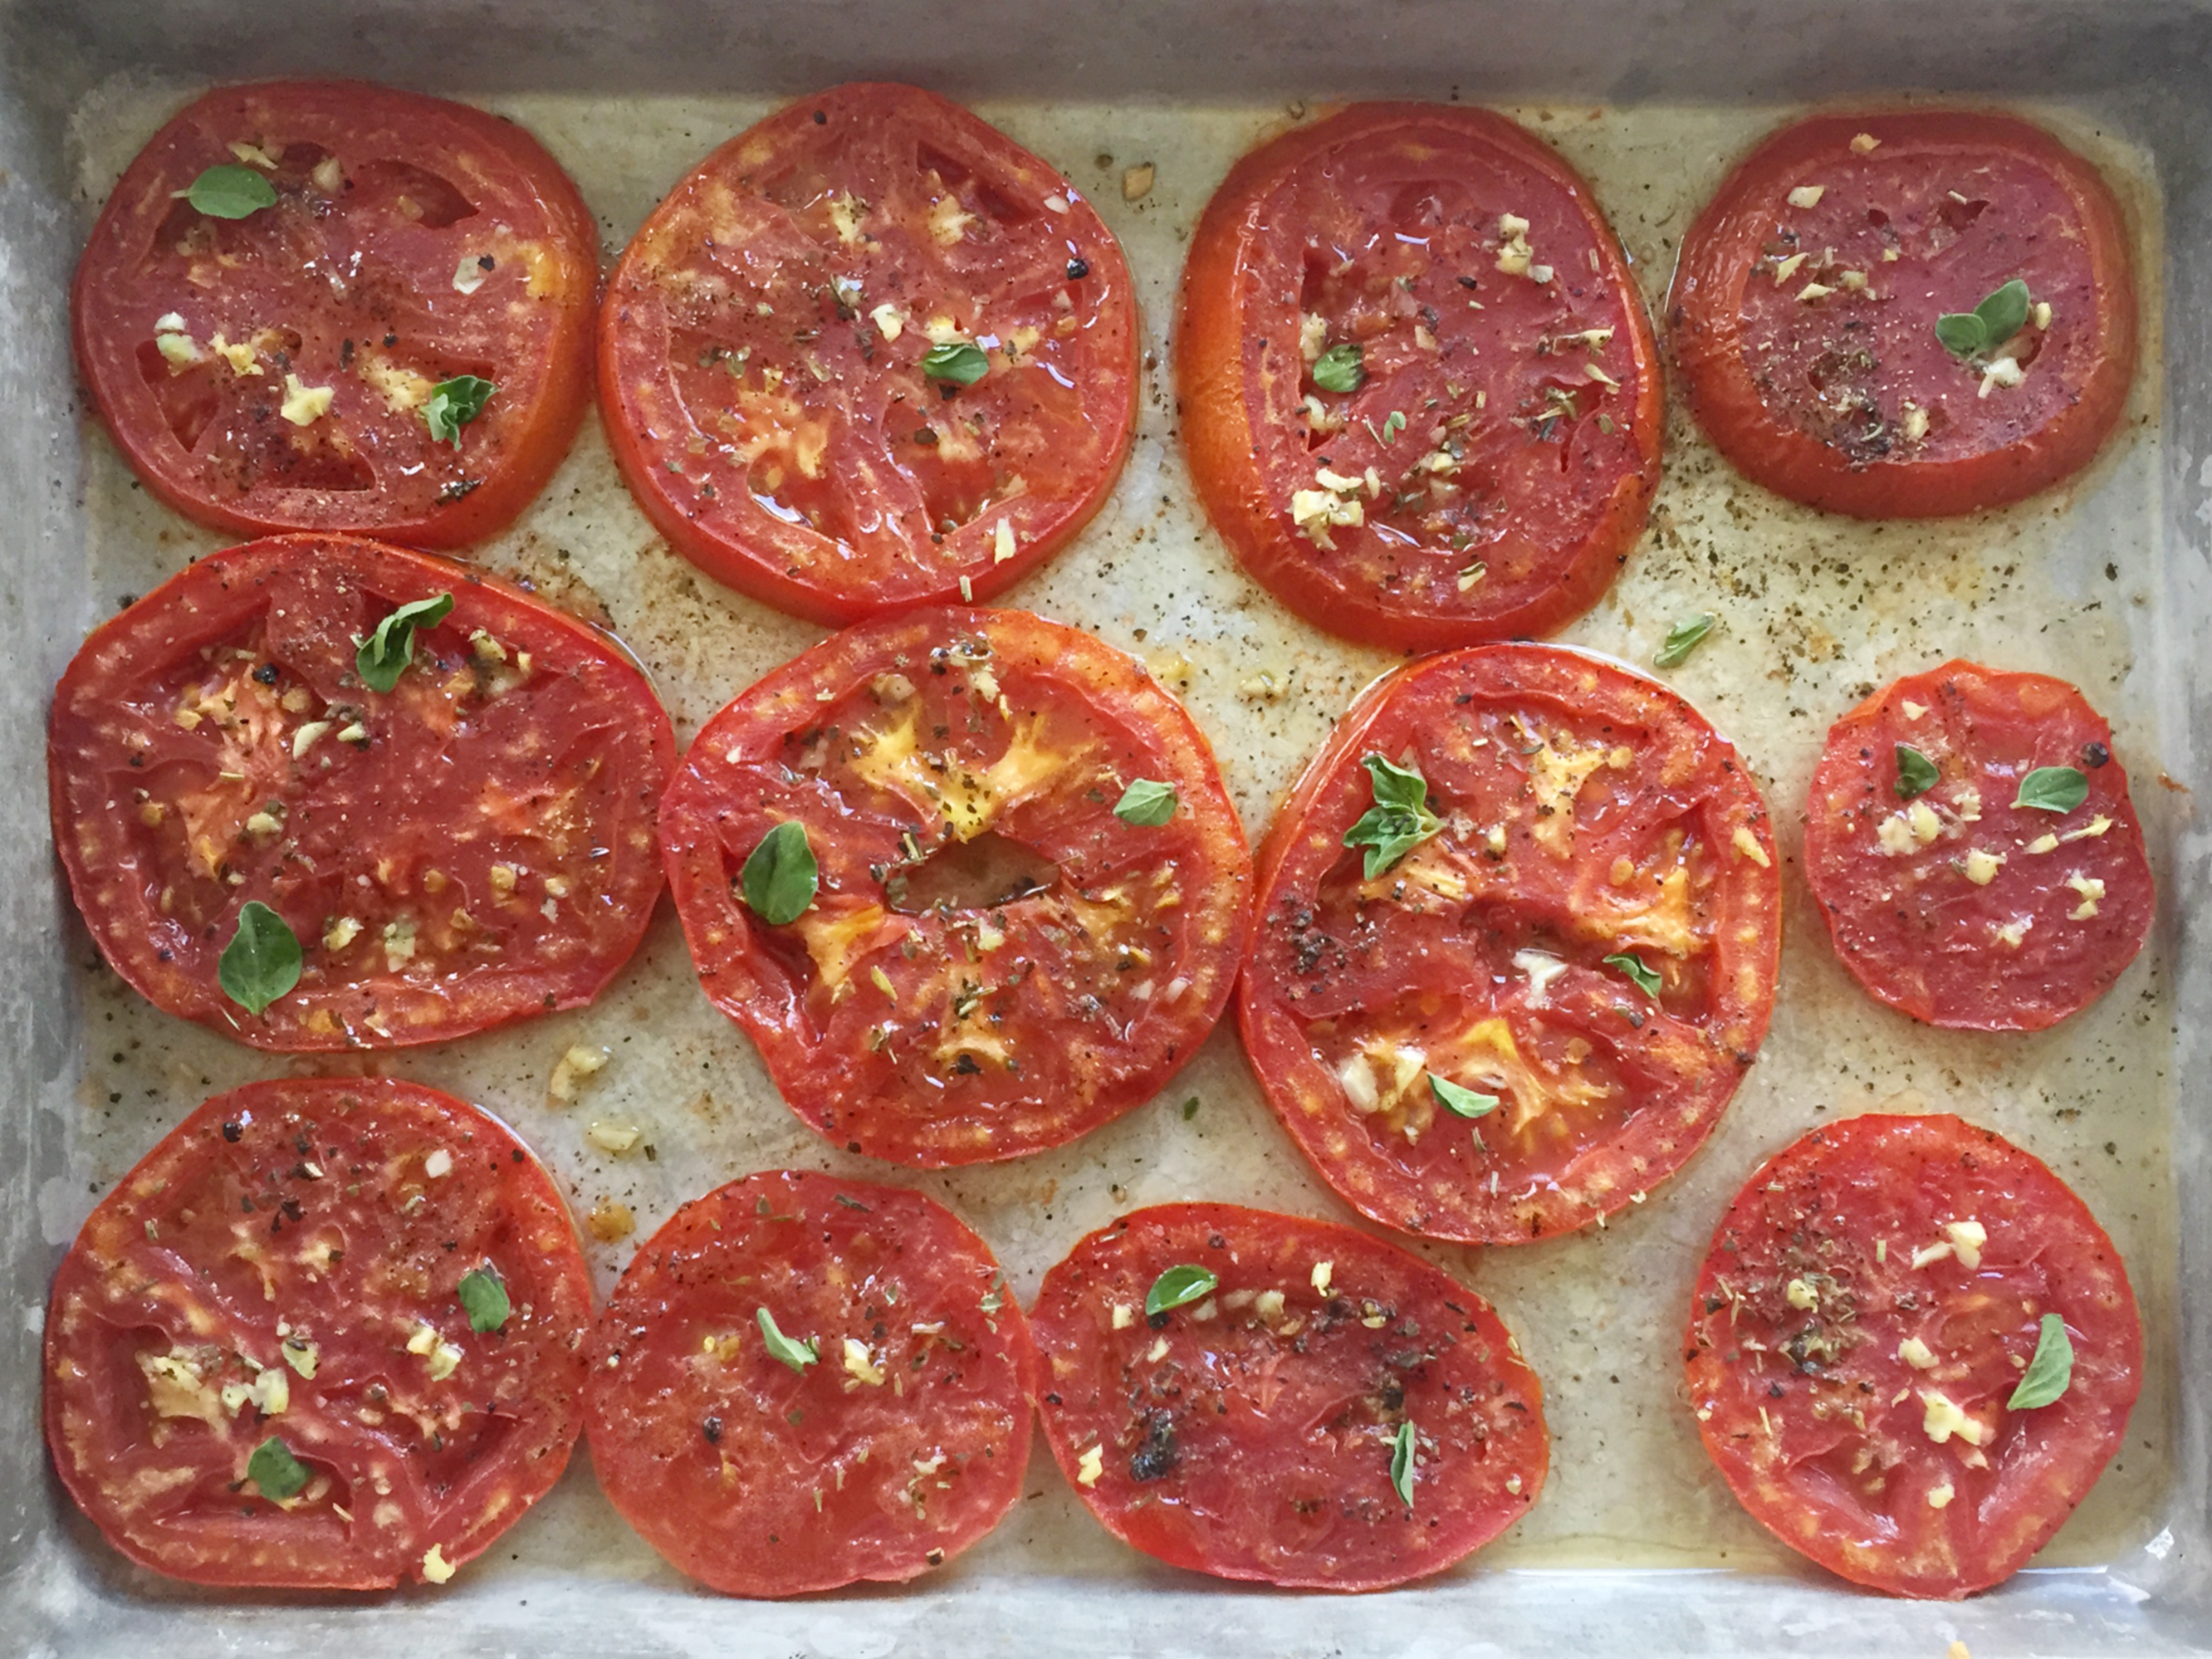 Baked tomato slices on a sheet tray.